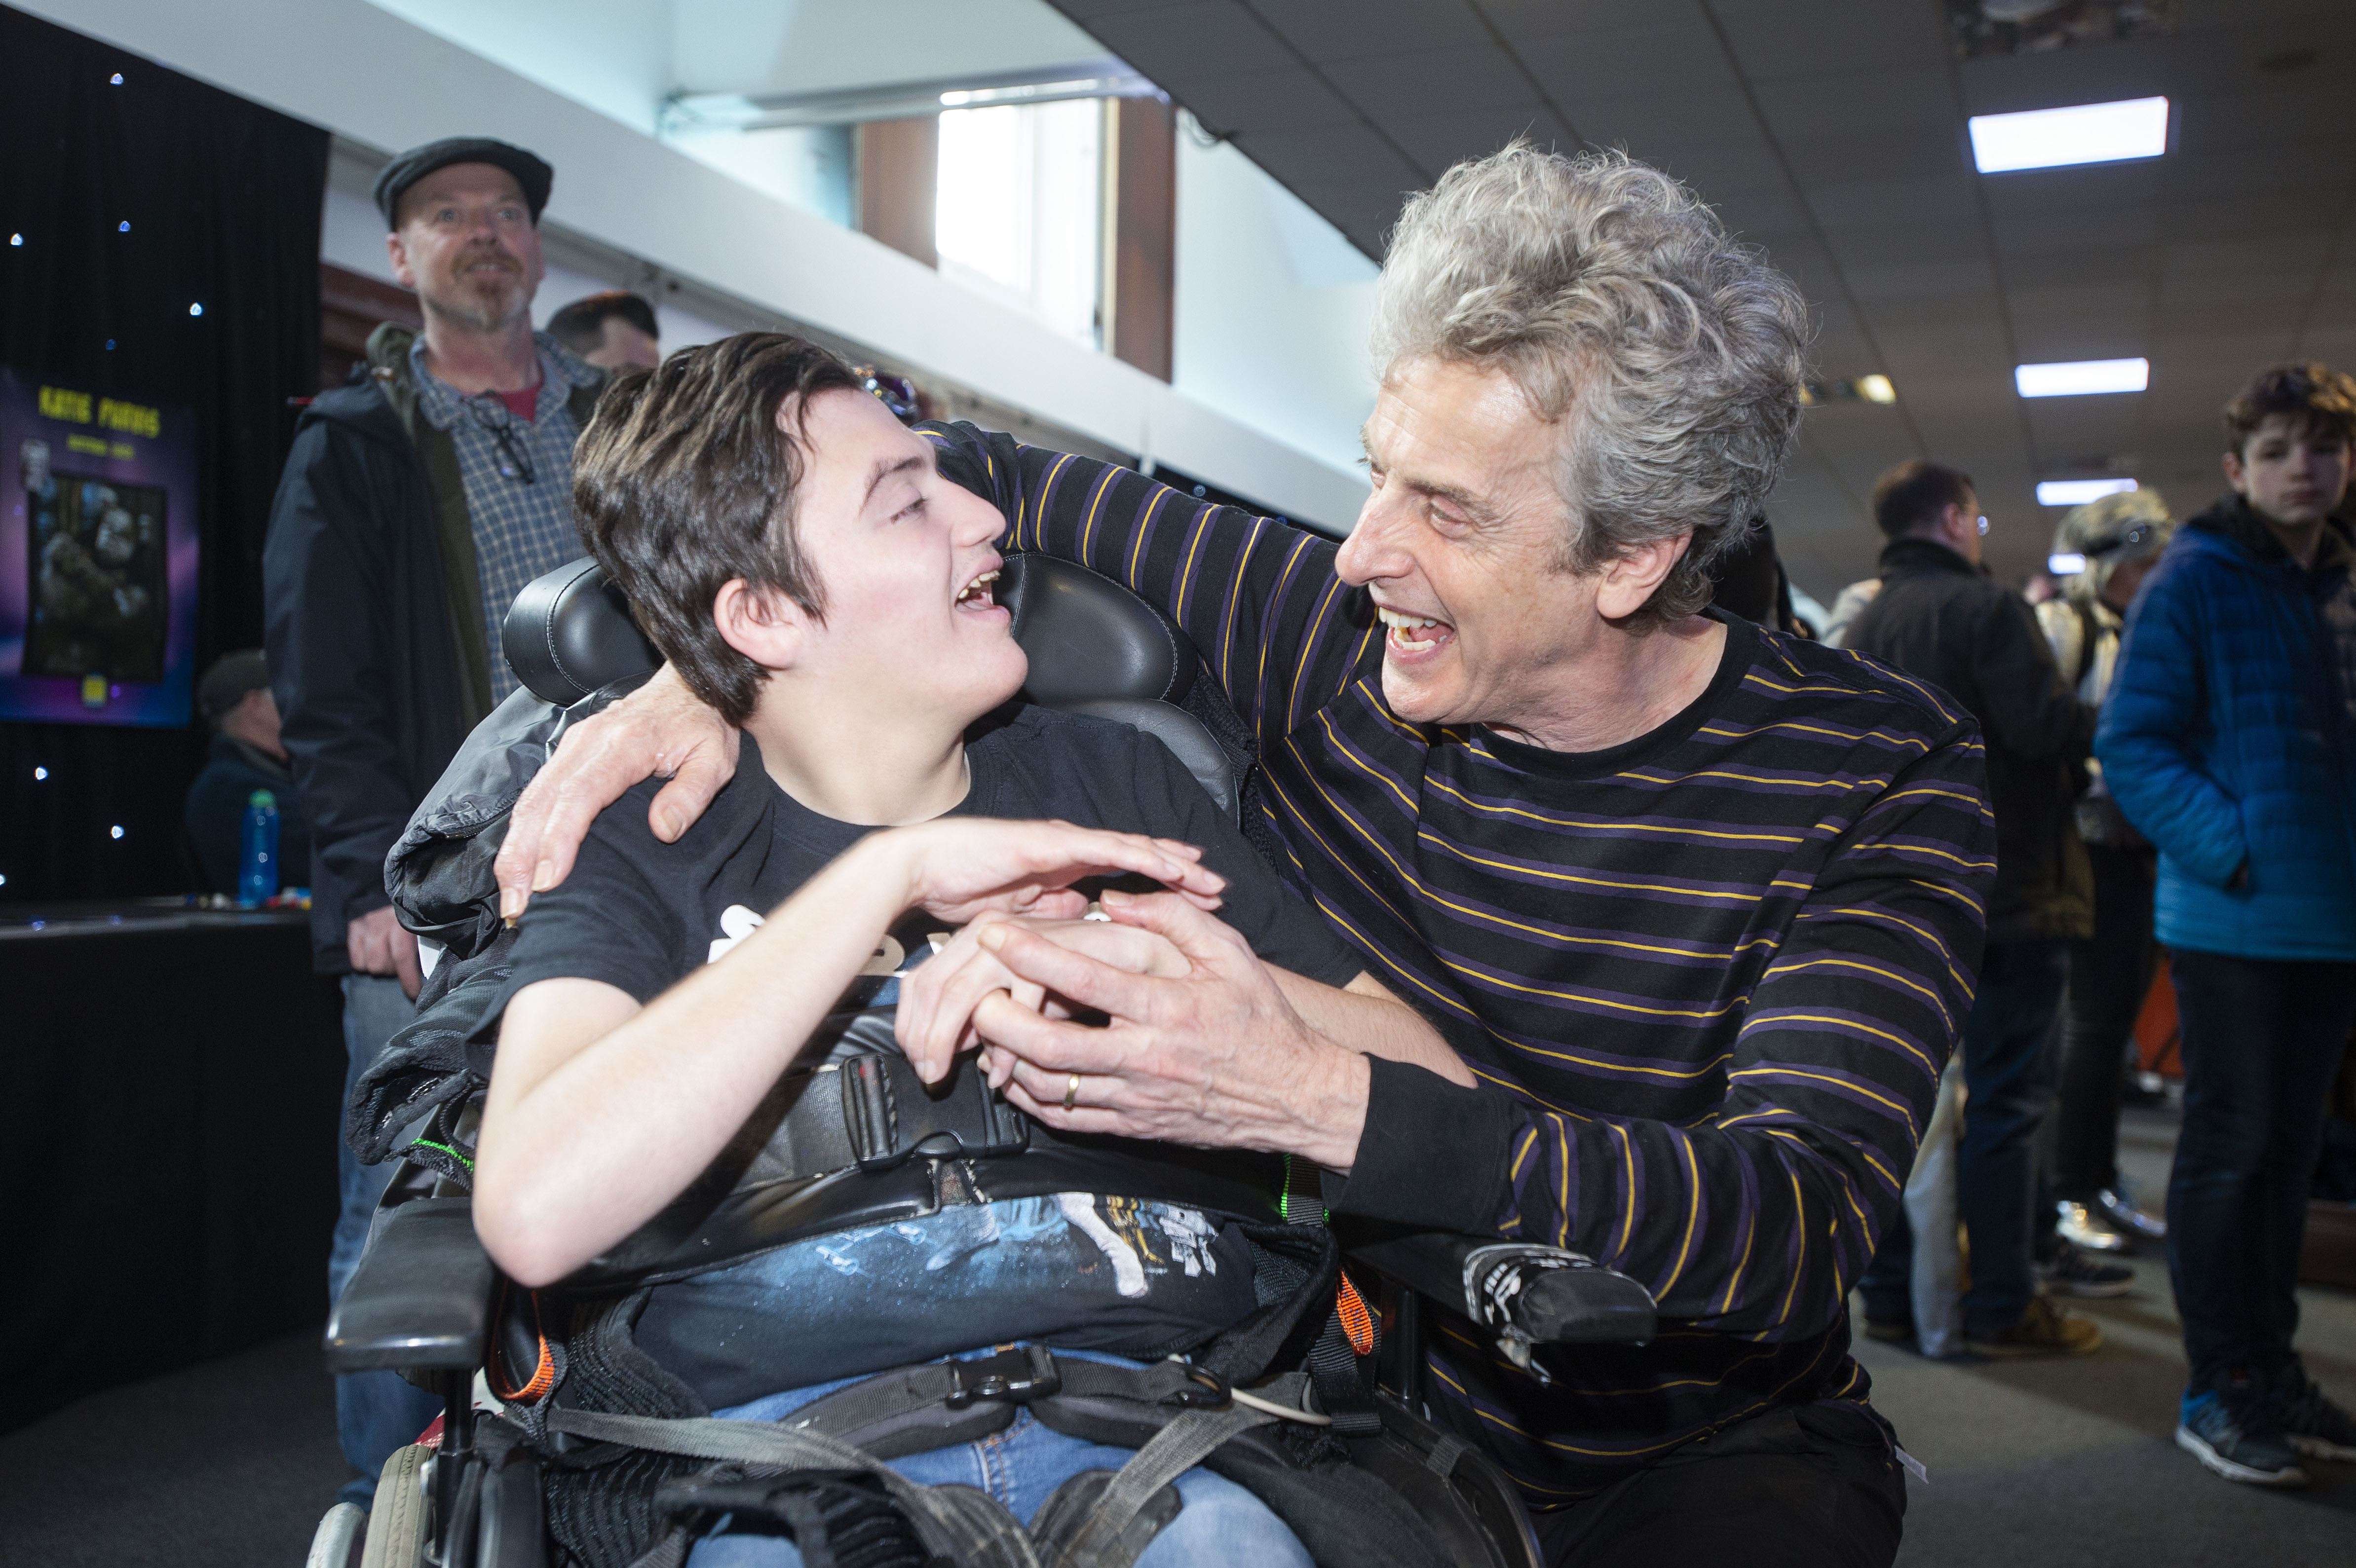 Adam Meldrum, who uses Rachel House, and Peter Capaldi